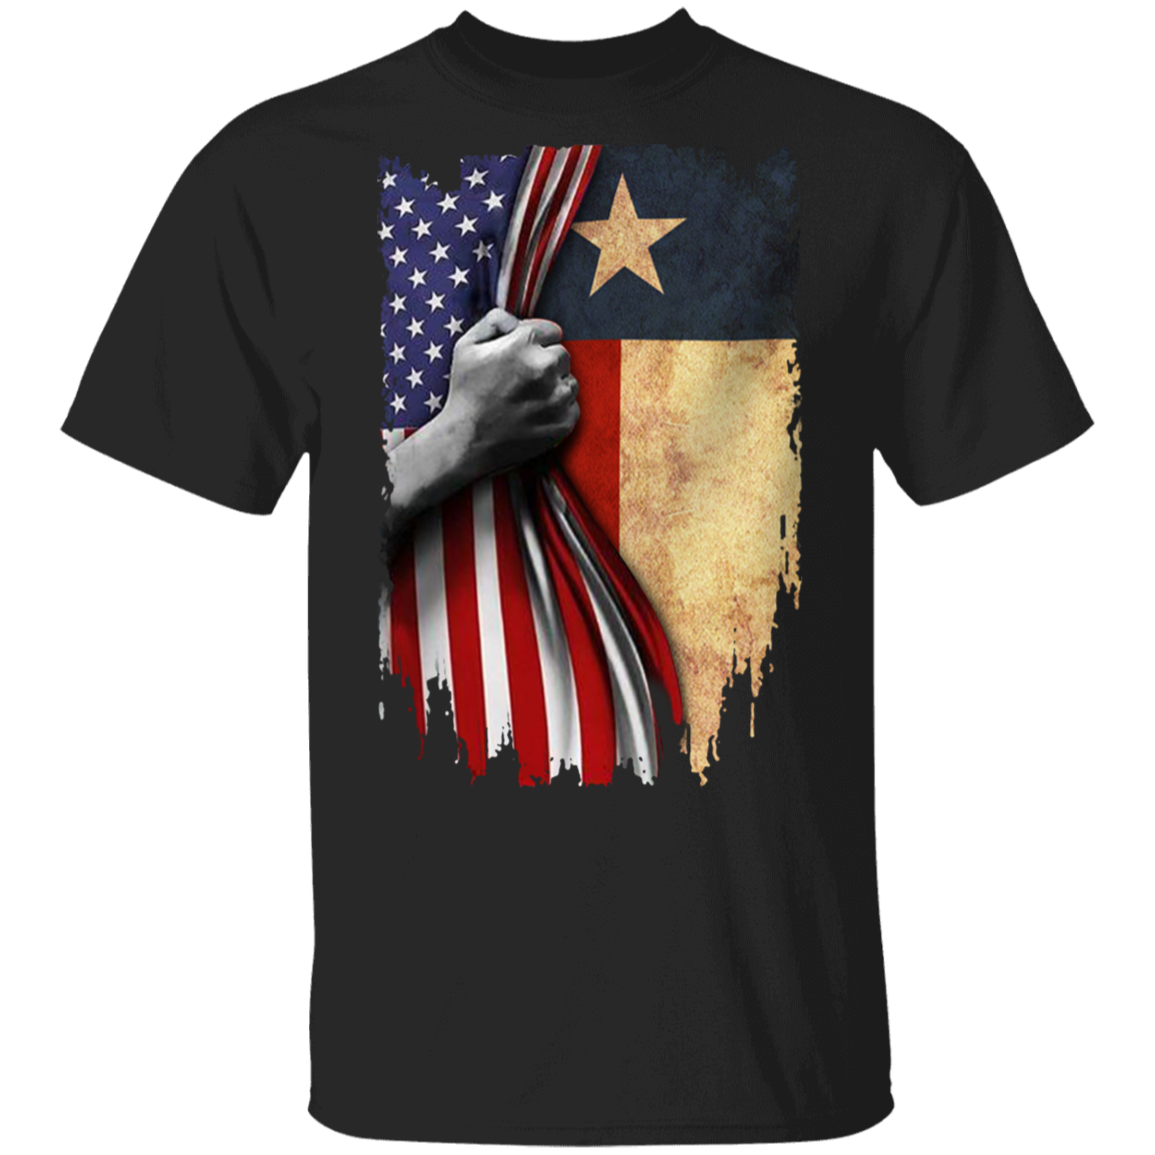 Texas Flag Inside American Flag T Shirt Fourth Of July Shirts Gift For Patriotic In 2020 Fourth Of July Shirts American Flag Tshirt Flag Tshirt